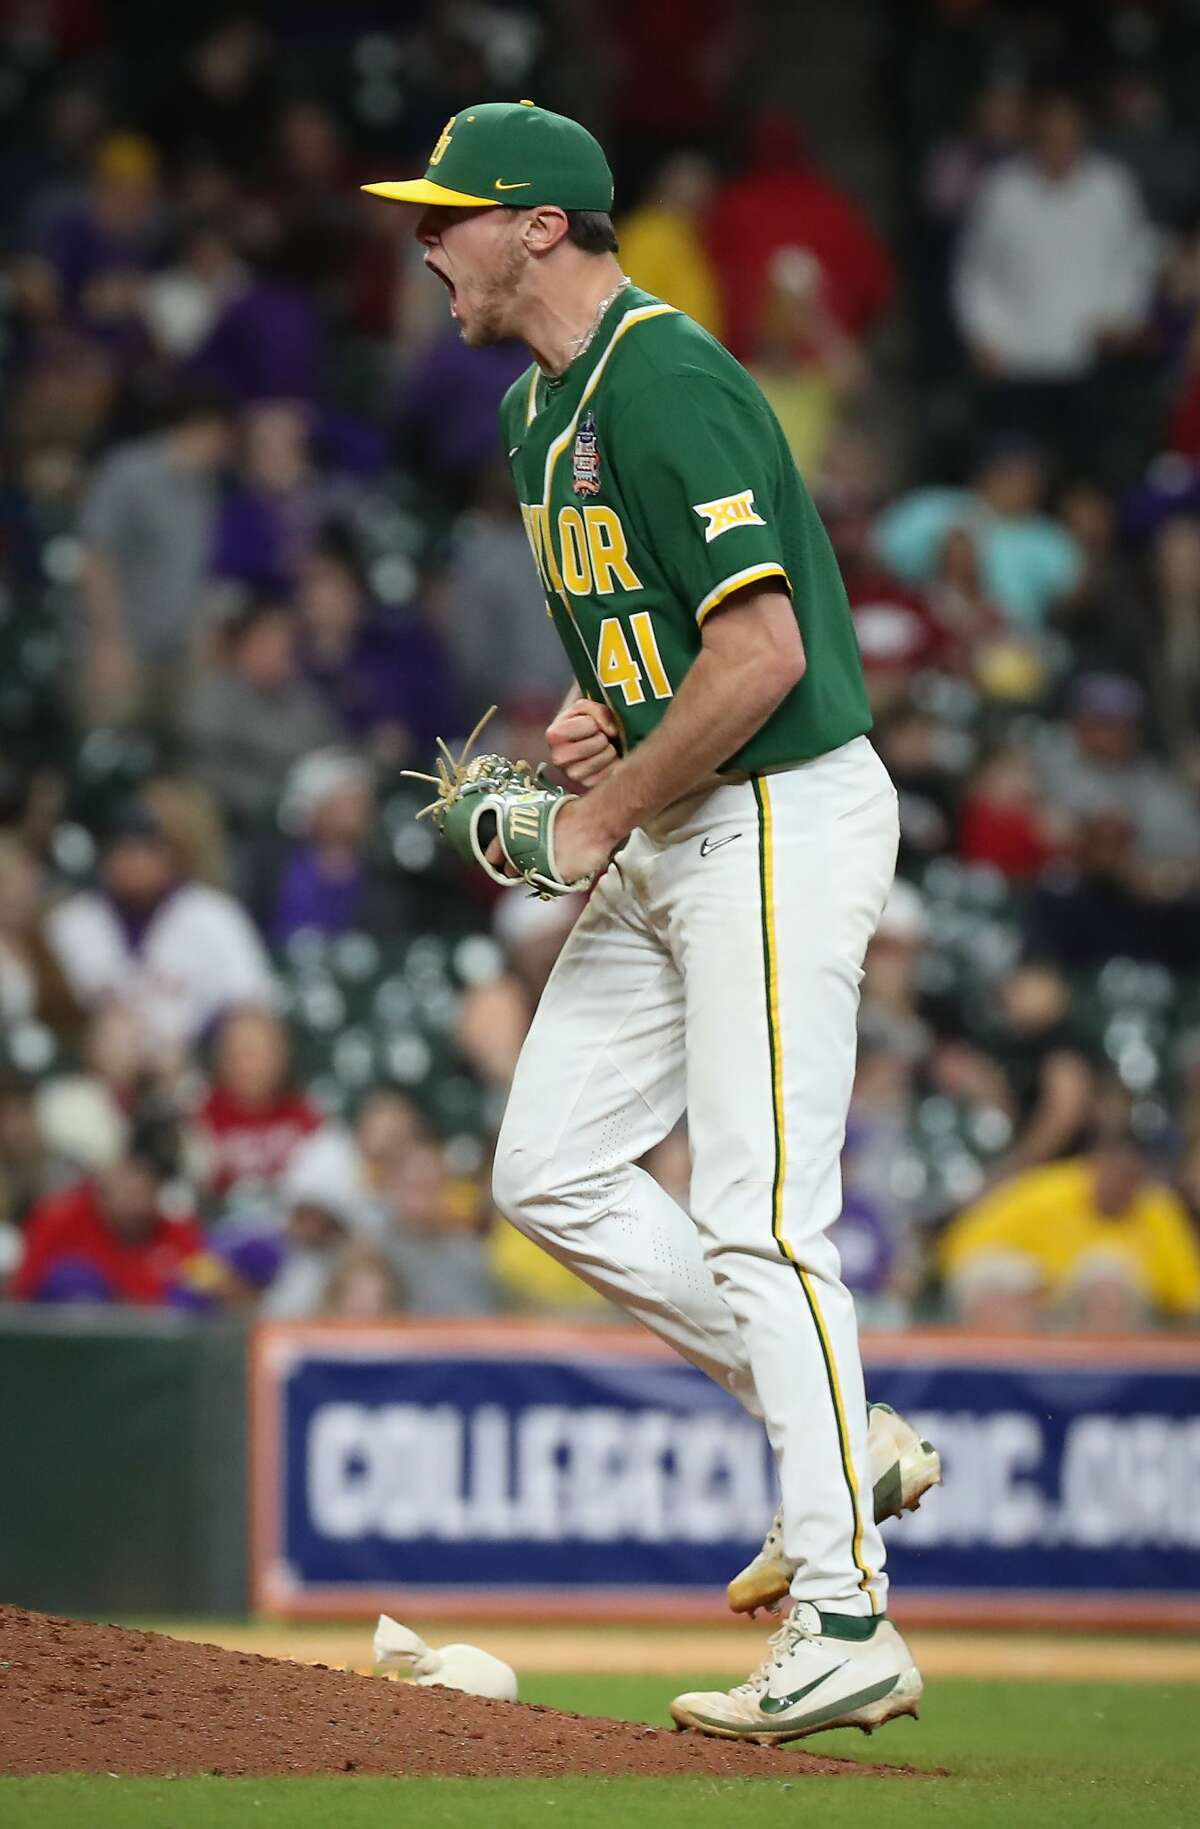 Baylor's Luke Boyd reacts to the final strike out during the 9th inning of the Shriners Hospitals for Children College Classic at Minute Maid Park Saturday, Feb. 29, 2020, in Houston.